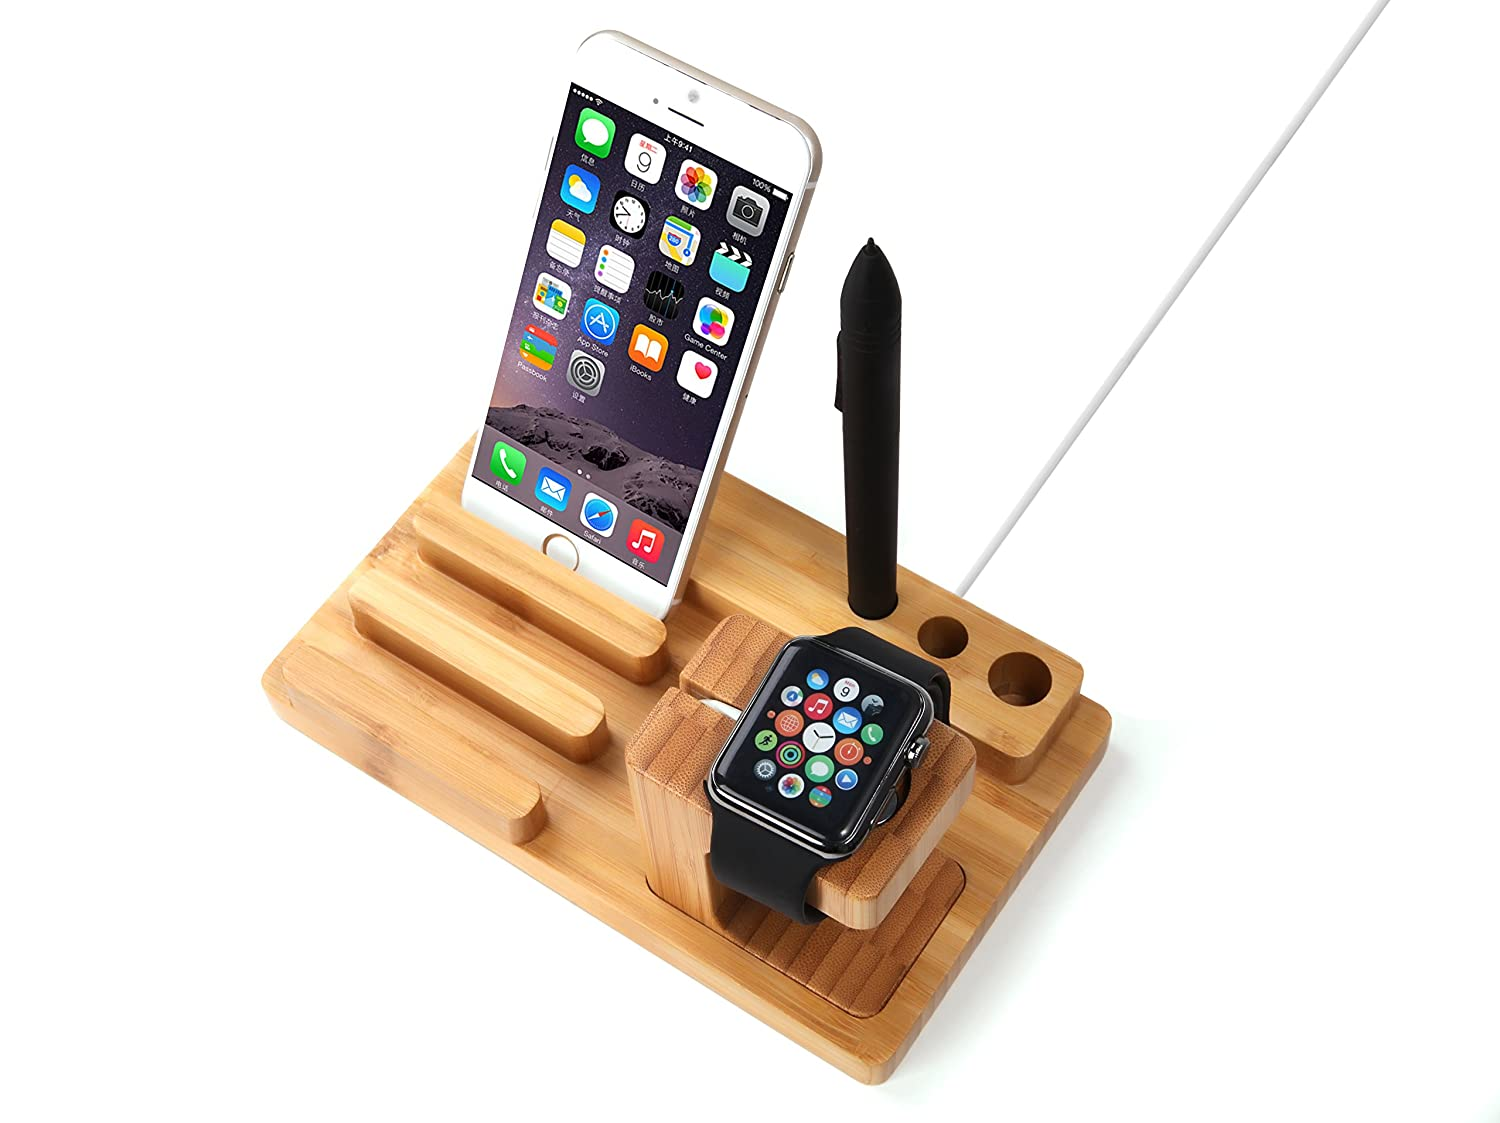 amazon com apple watch stand trond ac4 bamboo dual charging amazon com apple watch stand trond ac4 bamboo dual charging stand cradle with pen holder for all versions of apple watch iphone ipad cell phones